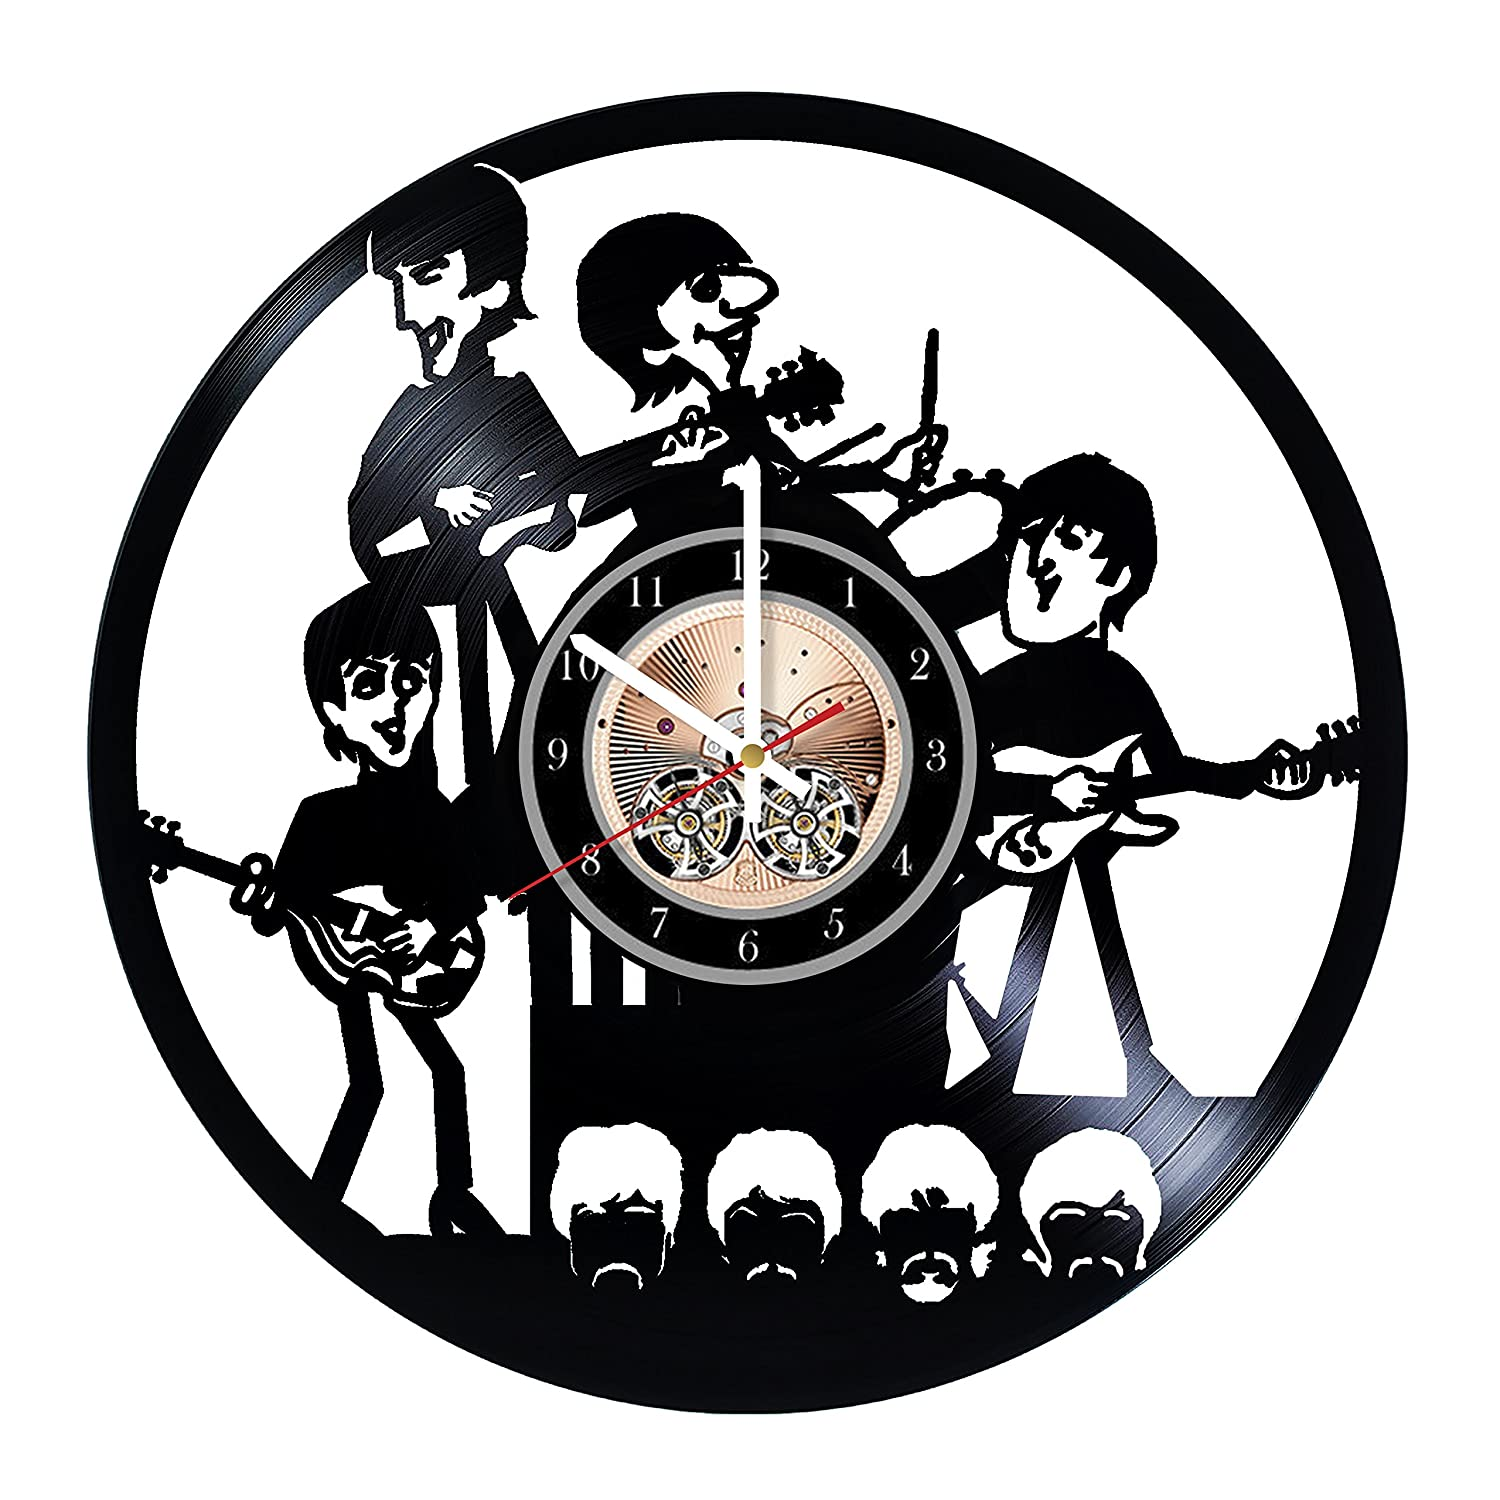 Wood Workshop Beatles Comics Vinyl Record Wall Clock Gift Ideas for him and her Get Unique Bedroom or Living Room Wall Decor